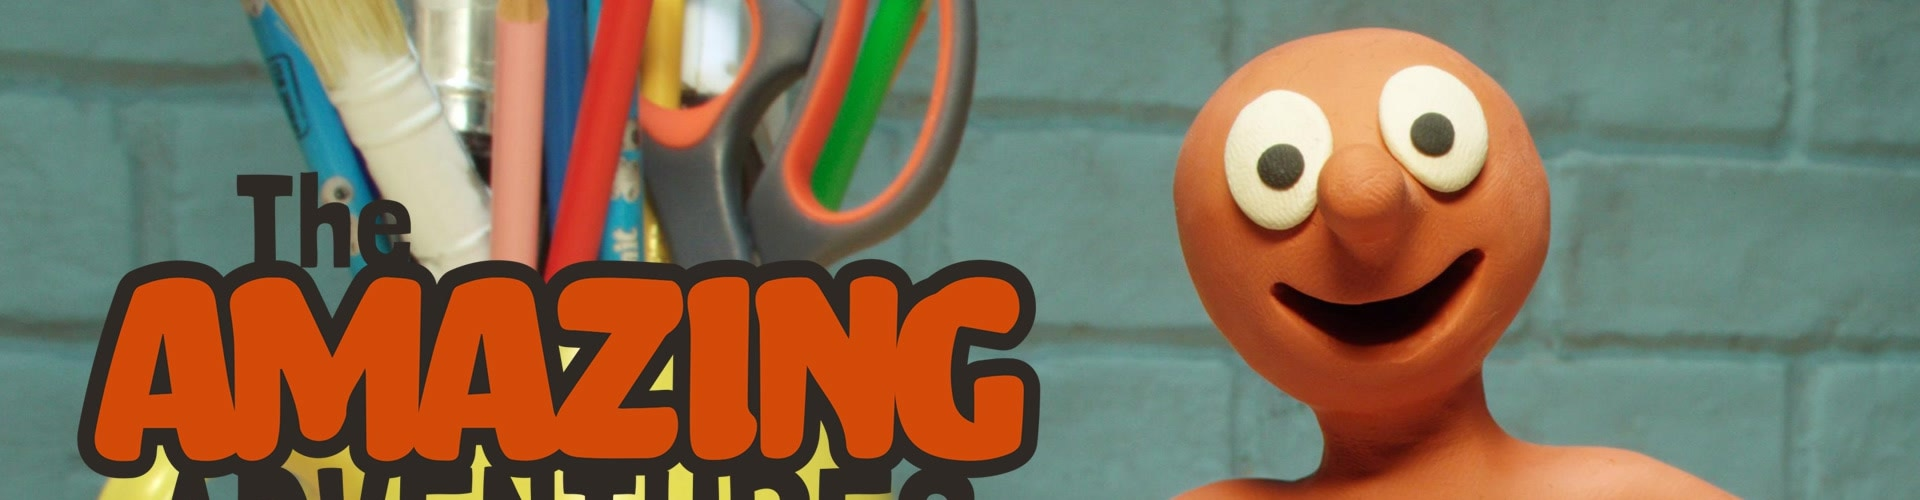 Watch The Amazing Adventures Of Morph Online